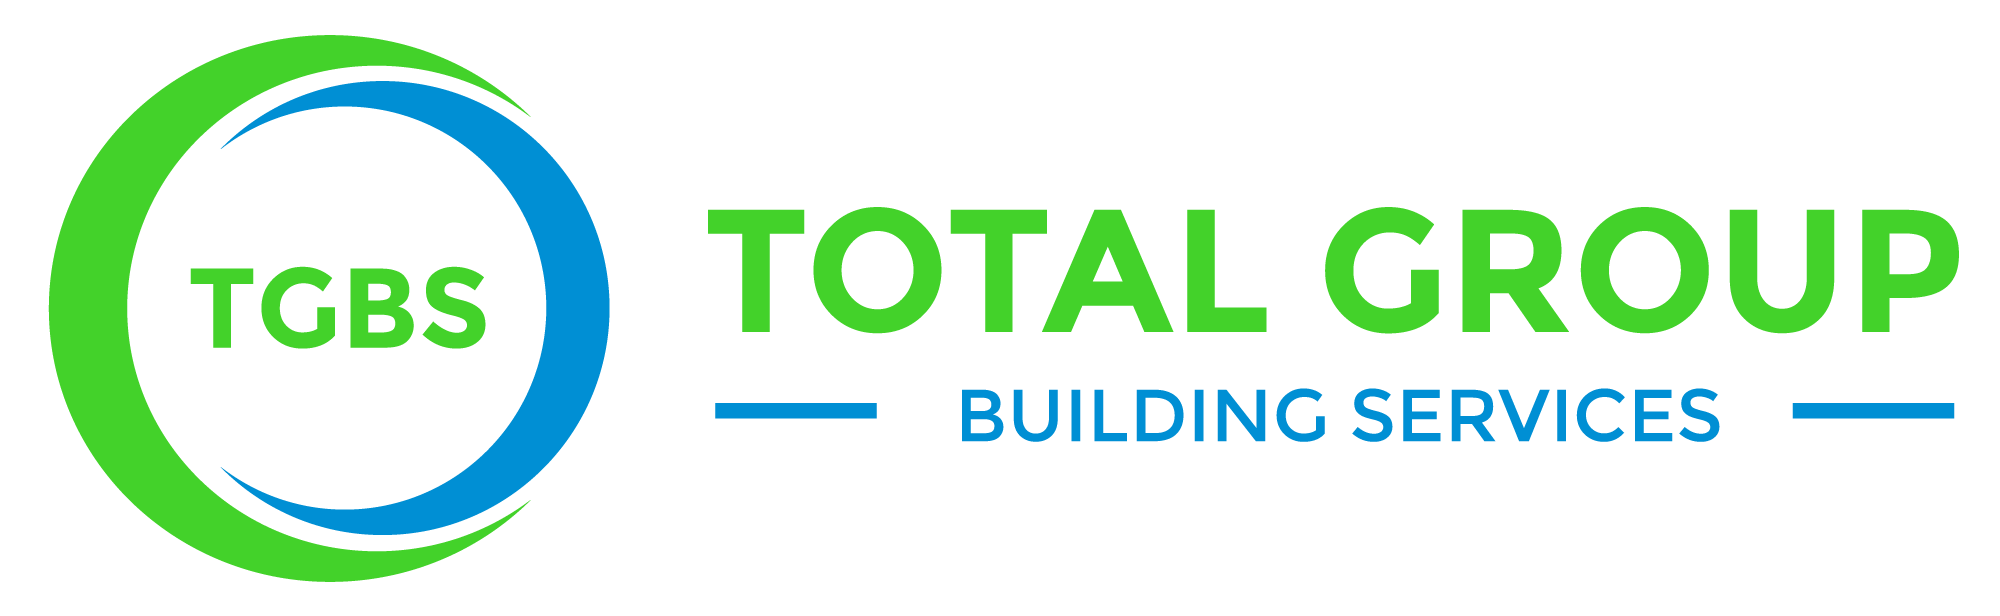 Total Group Building Services